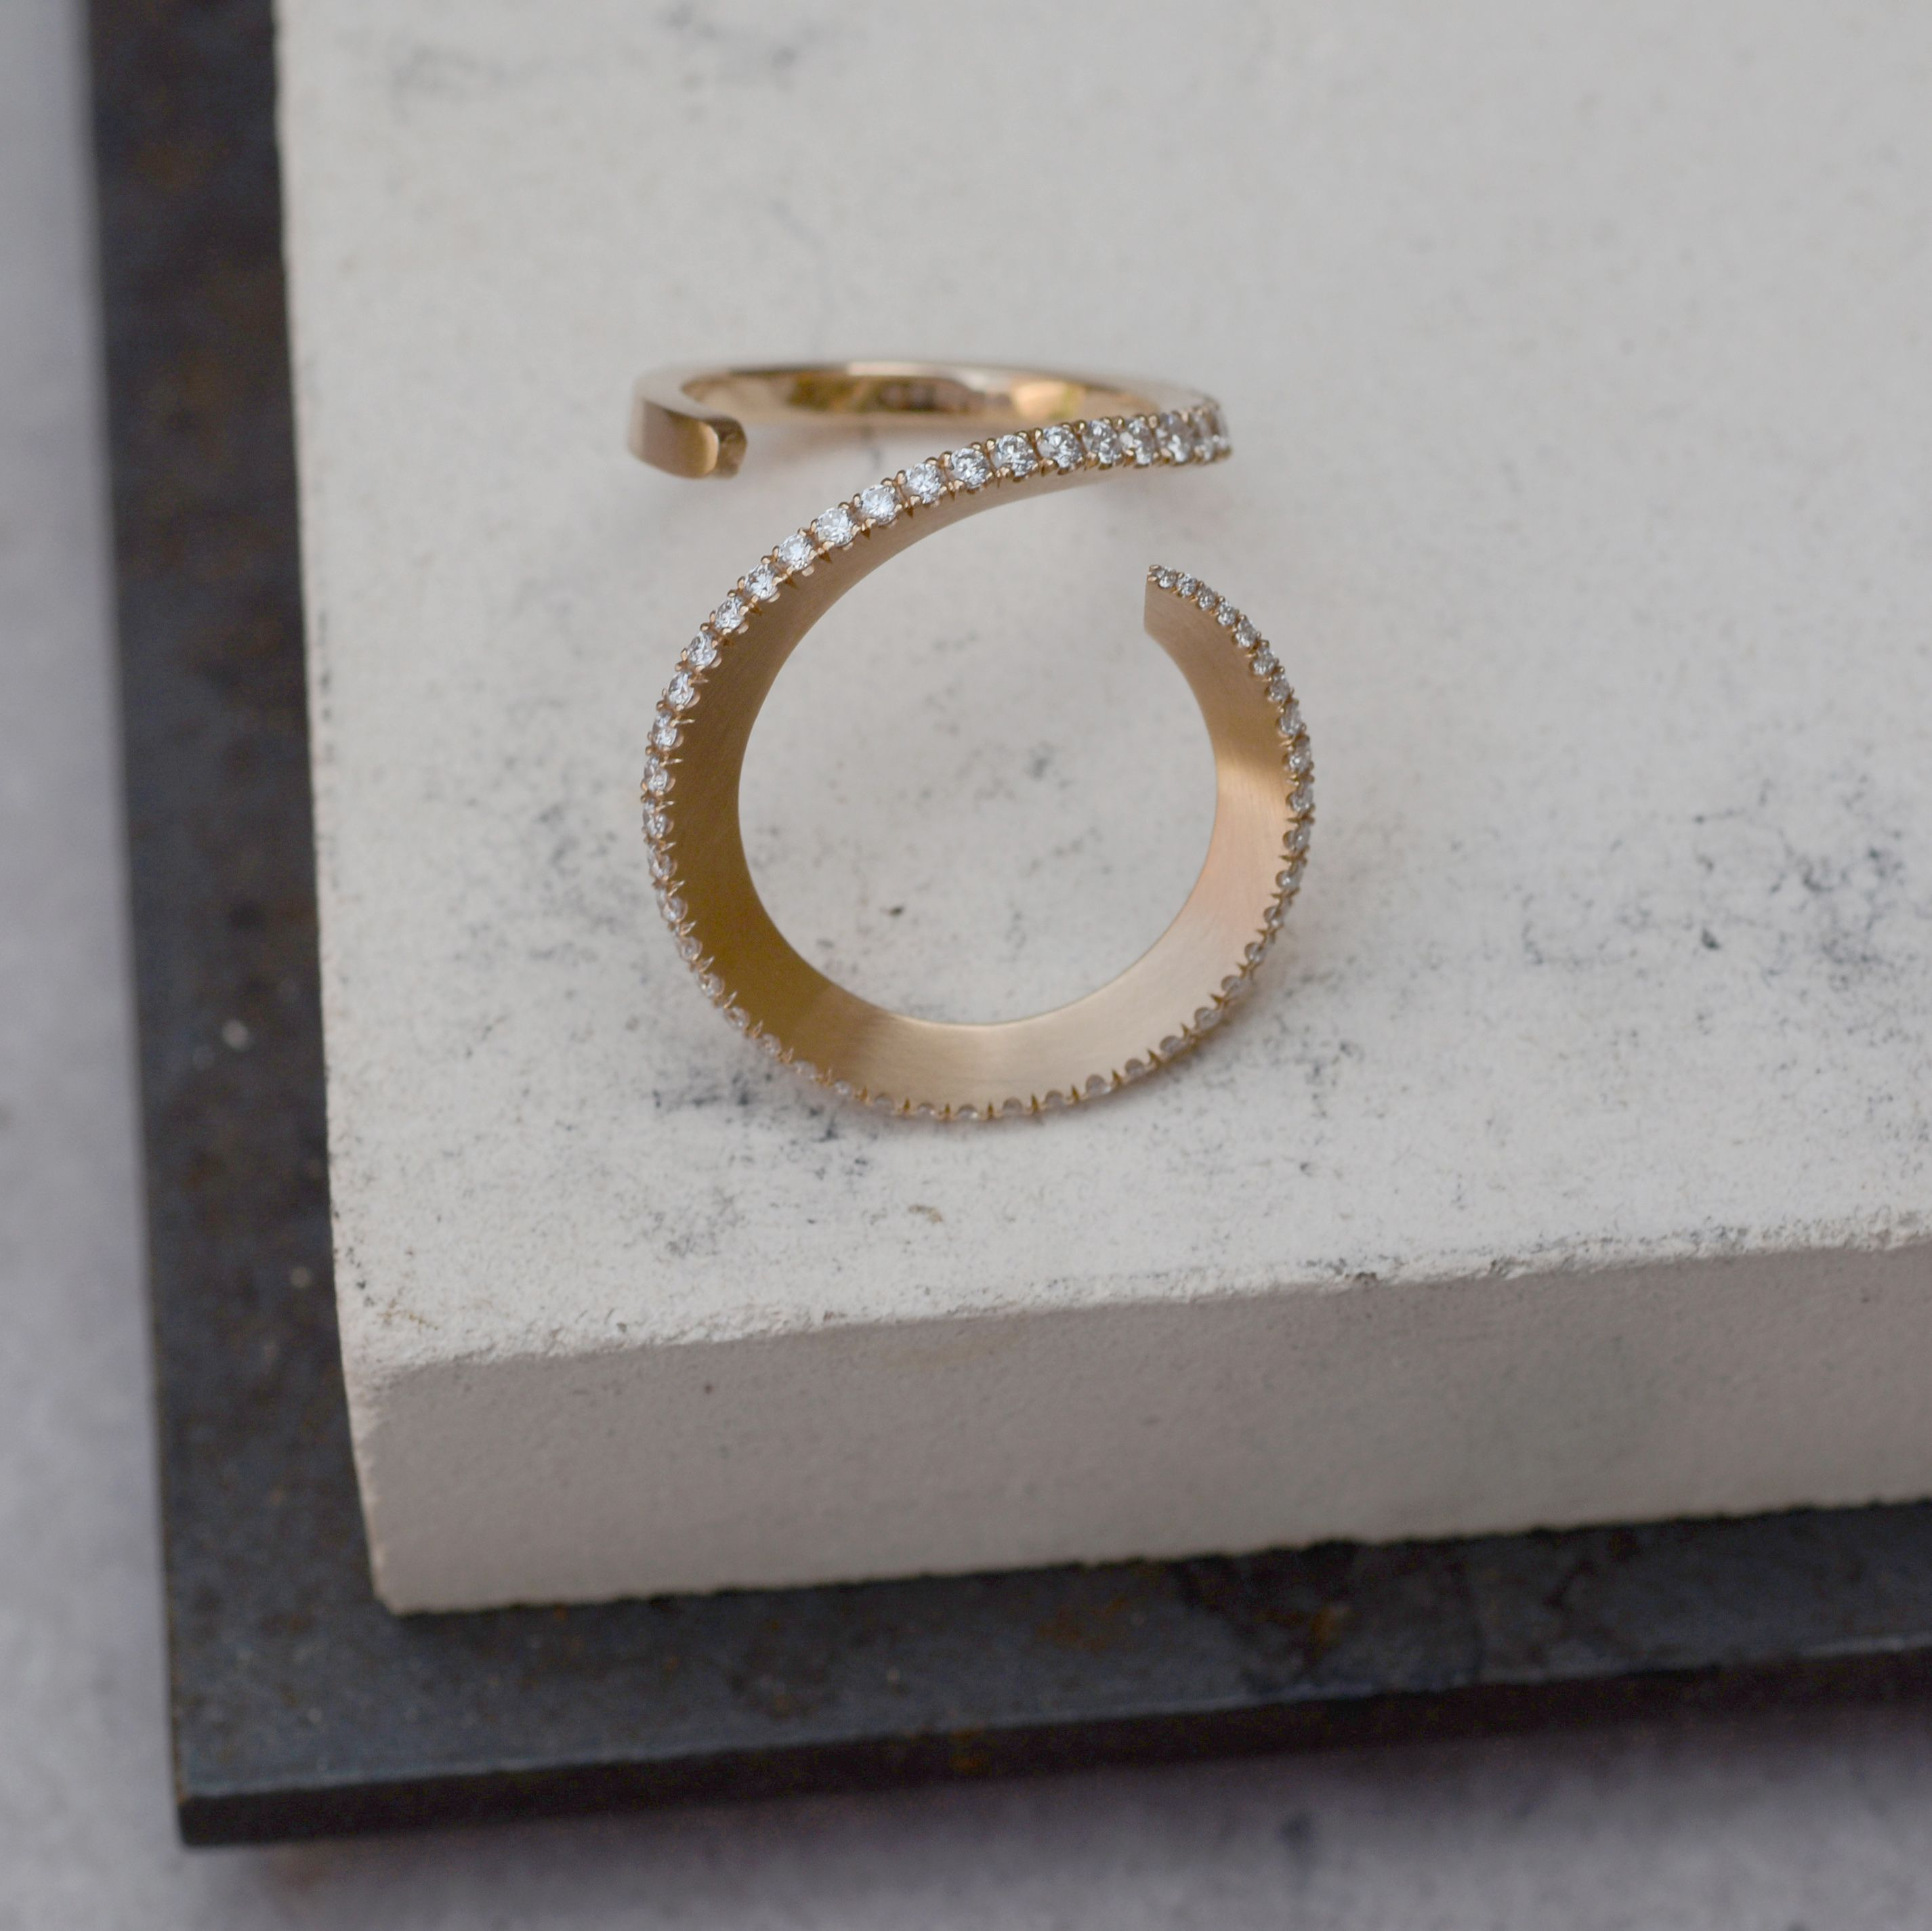 The deep circular curve of this unique rose gold and diamond cocktail ring is hand forged from 18ct gold bar and accentuated with a sparkling line of tapering pave white diamonds 💎 Available through our website for click & collect or worldwide shipping. #statementring #cocktailring #handcraftedjewellery #jewellerydesign #jewellerylondon #contemporaryjewellery #shopindependant #craftsmanship #designermaker #bespokejewellery #rosegoldring #diamondring #paveset